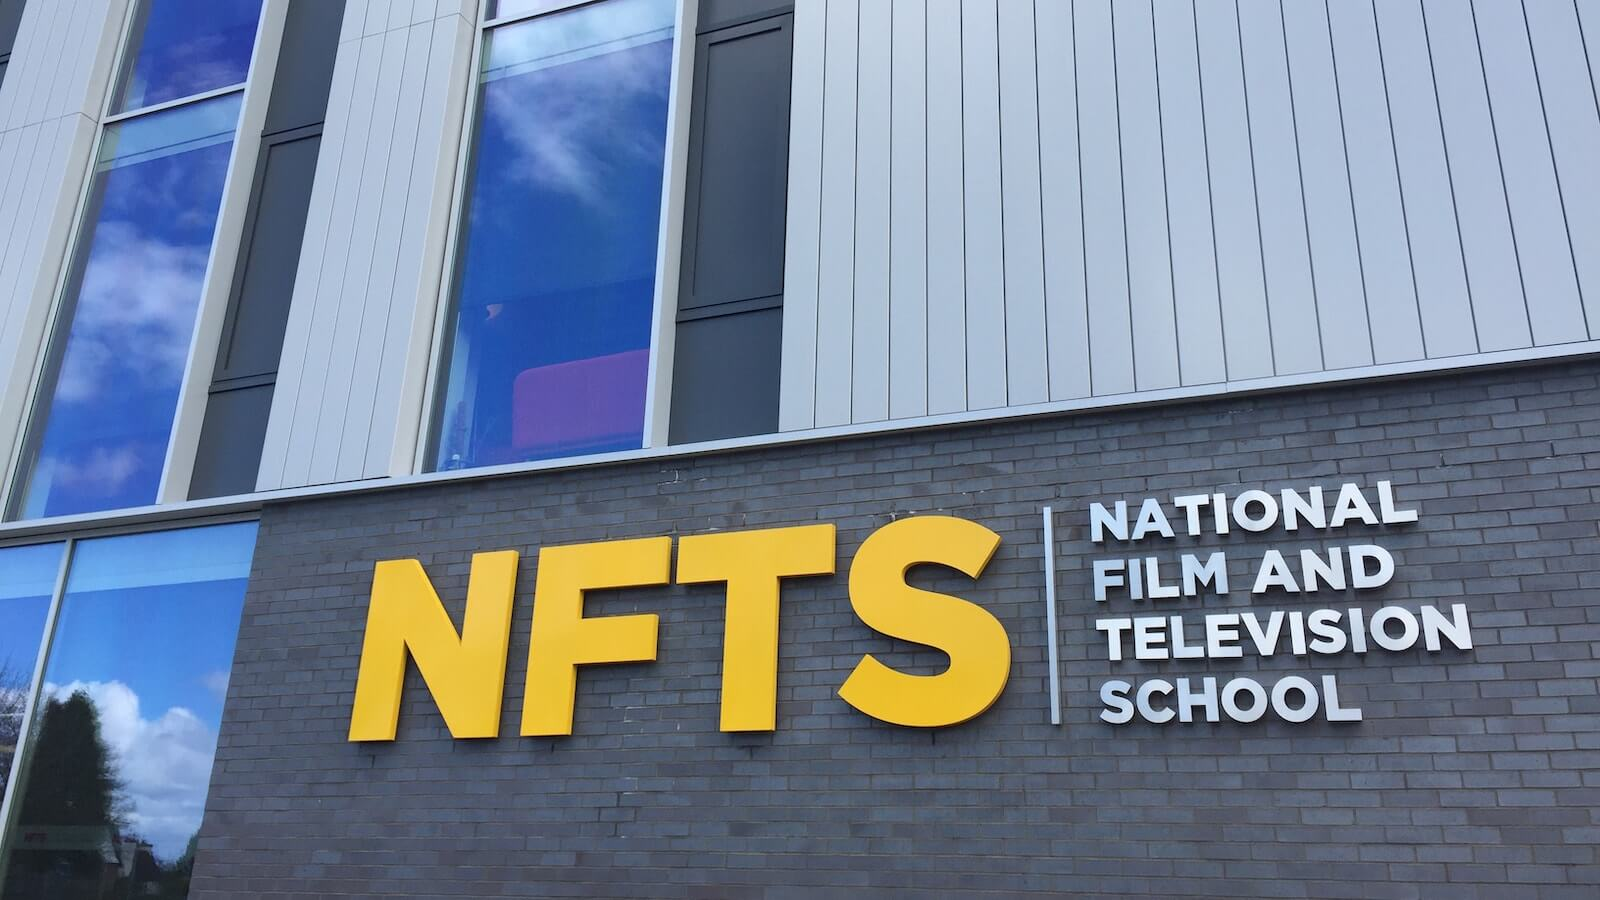 Best Film School National Film and Television School